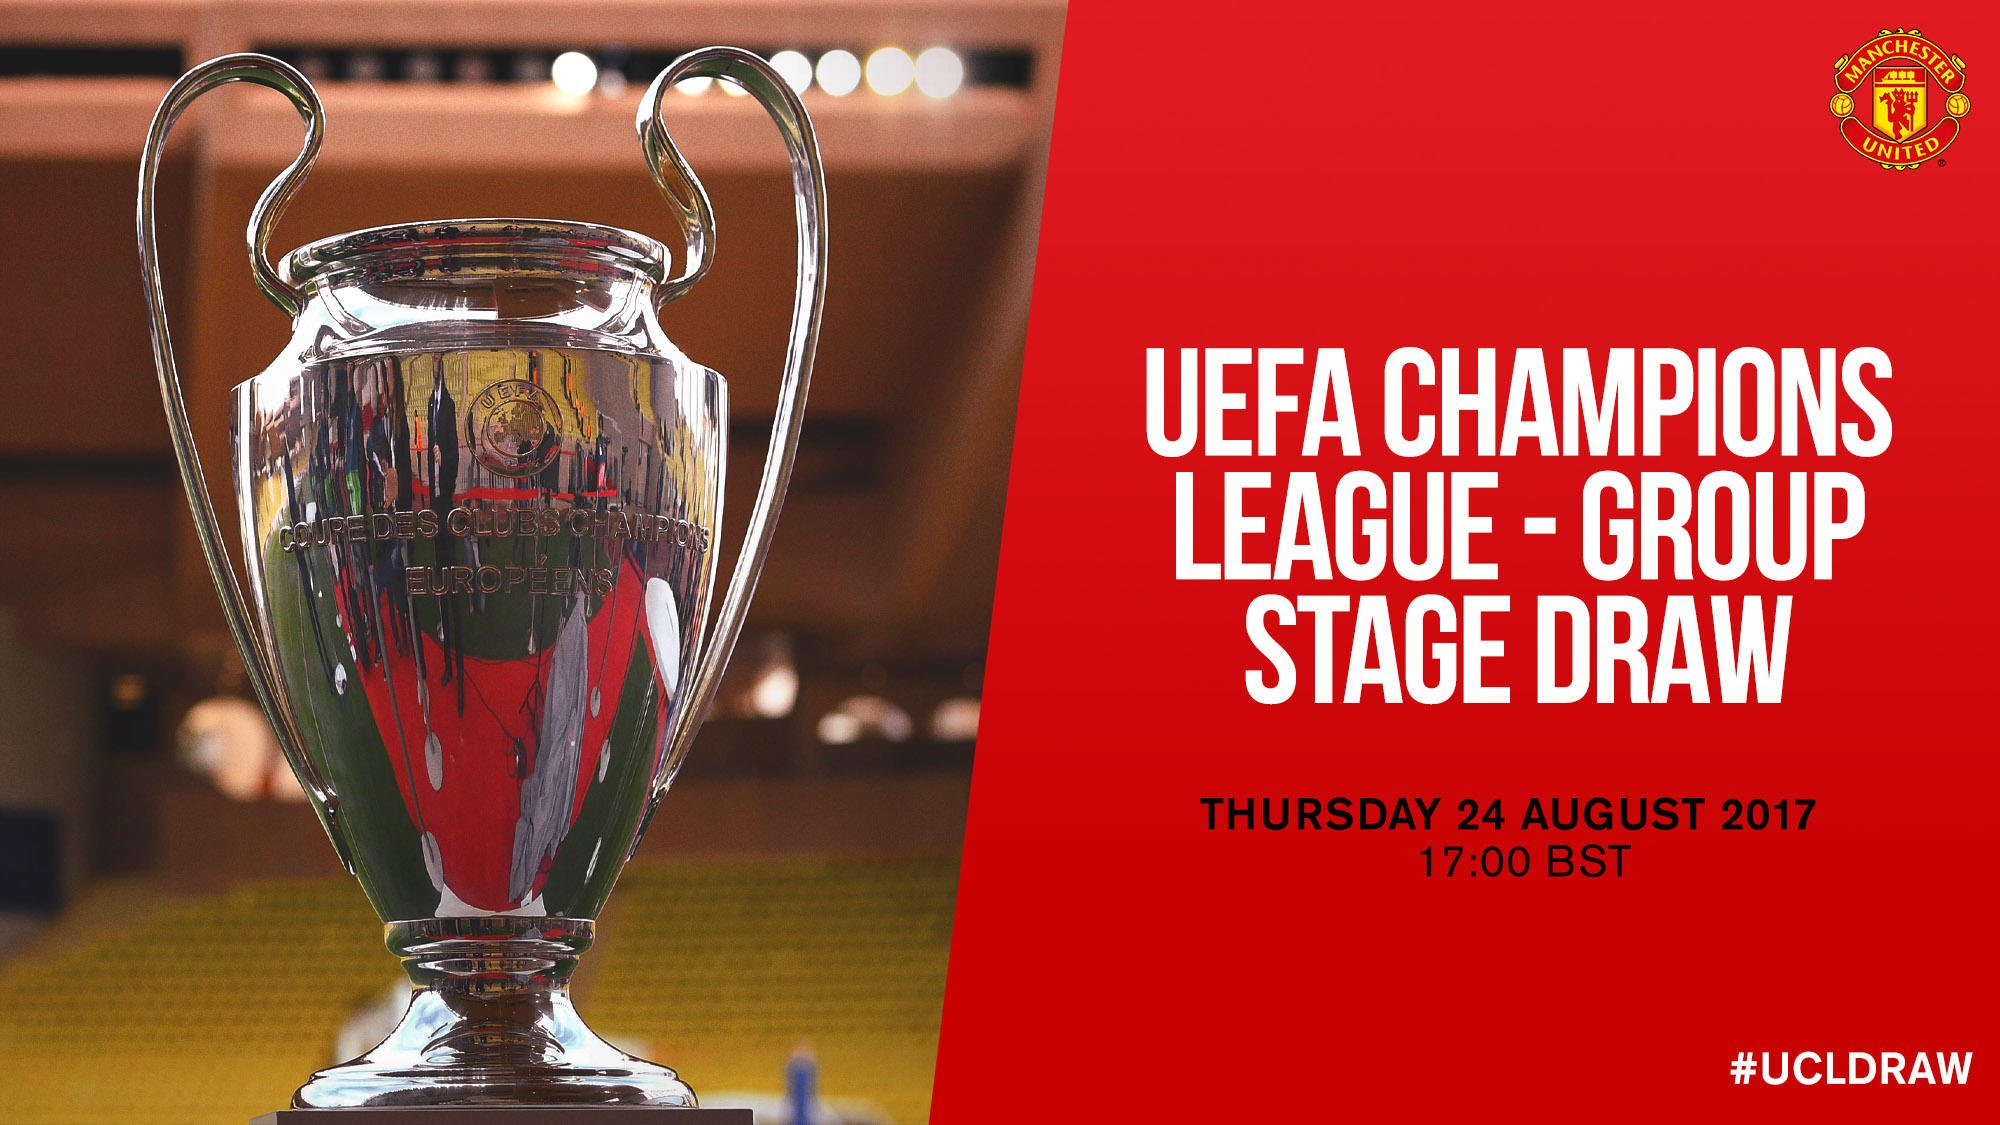 Today's the day - who do you want in the #UCLdraw?  Full details: https://t.co/9fVBbllYf0 https://t.co/ZKIjjB2loi